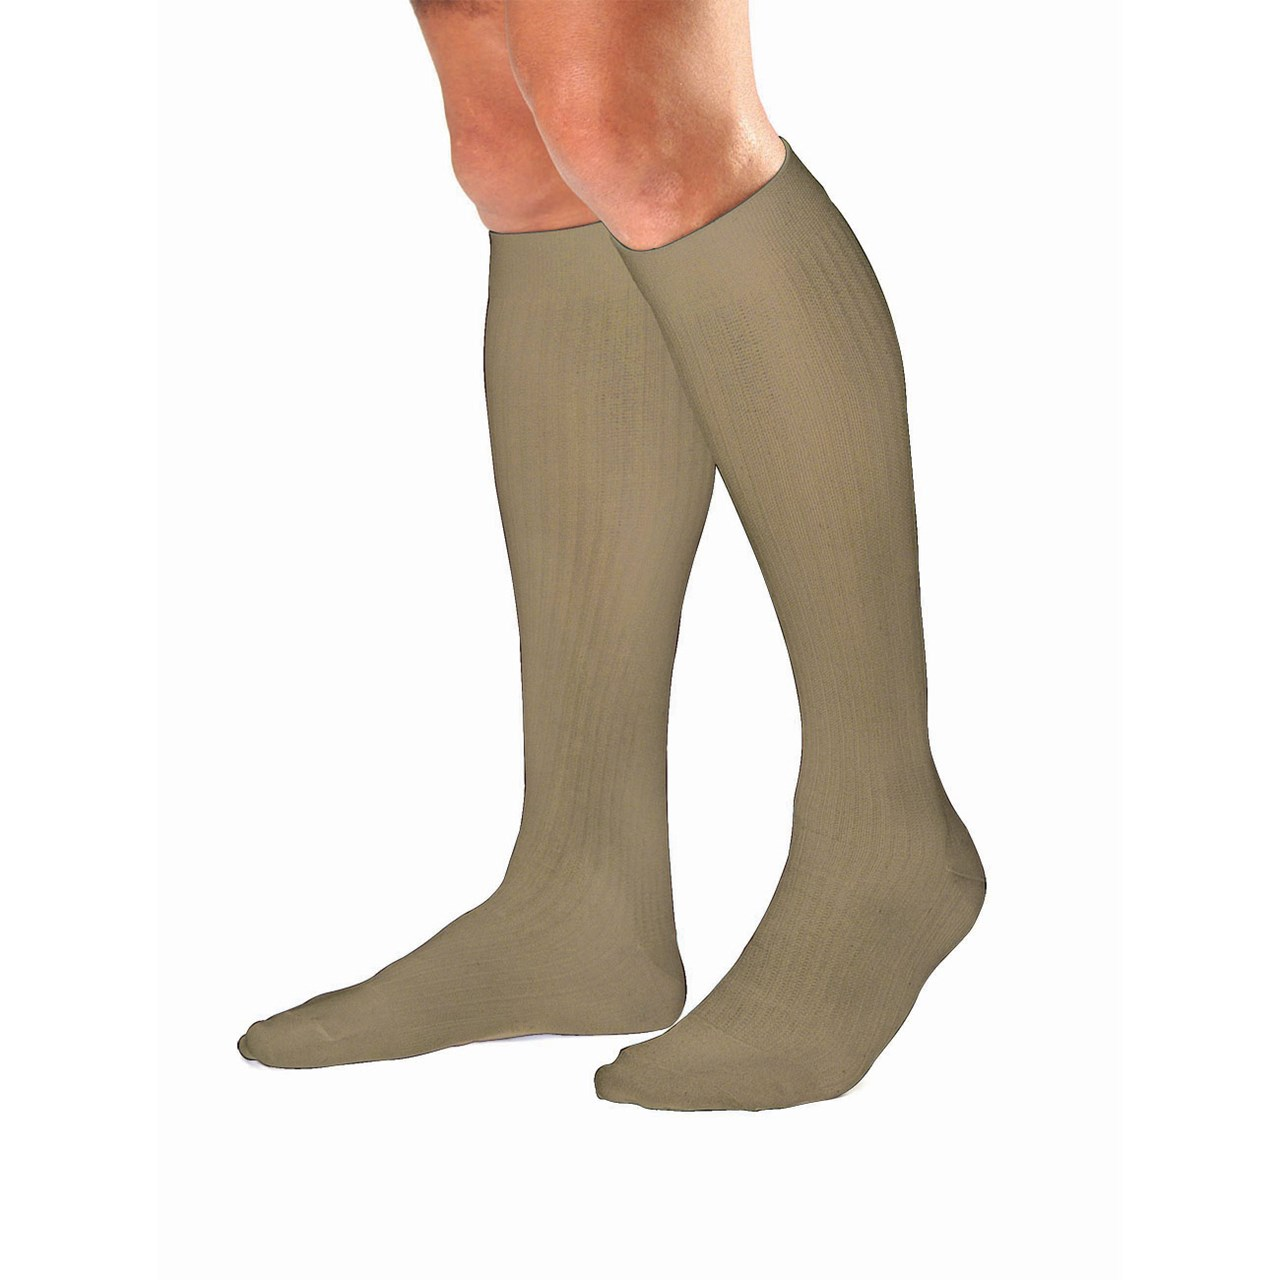 Jobst Men's Dress 8-15 mmHg Knee Highs - Khaki